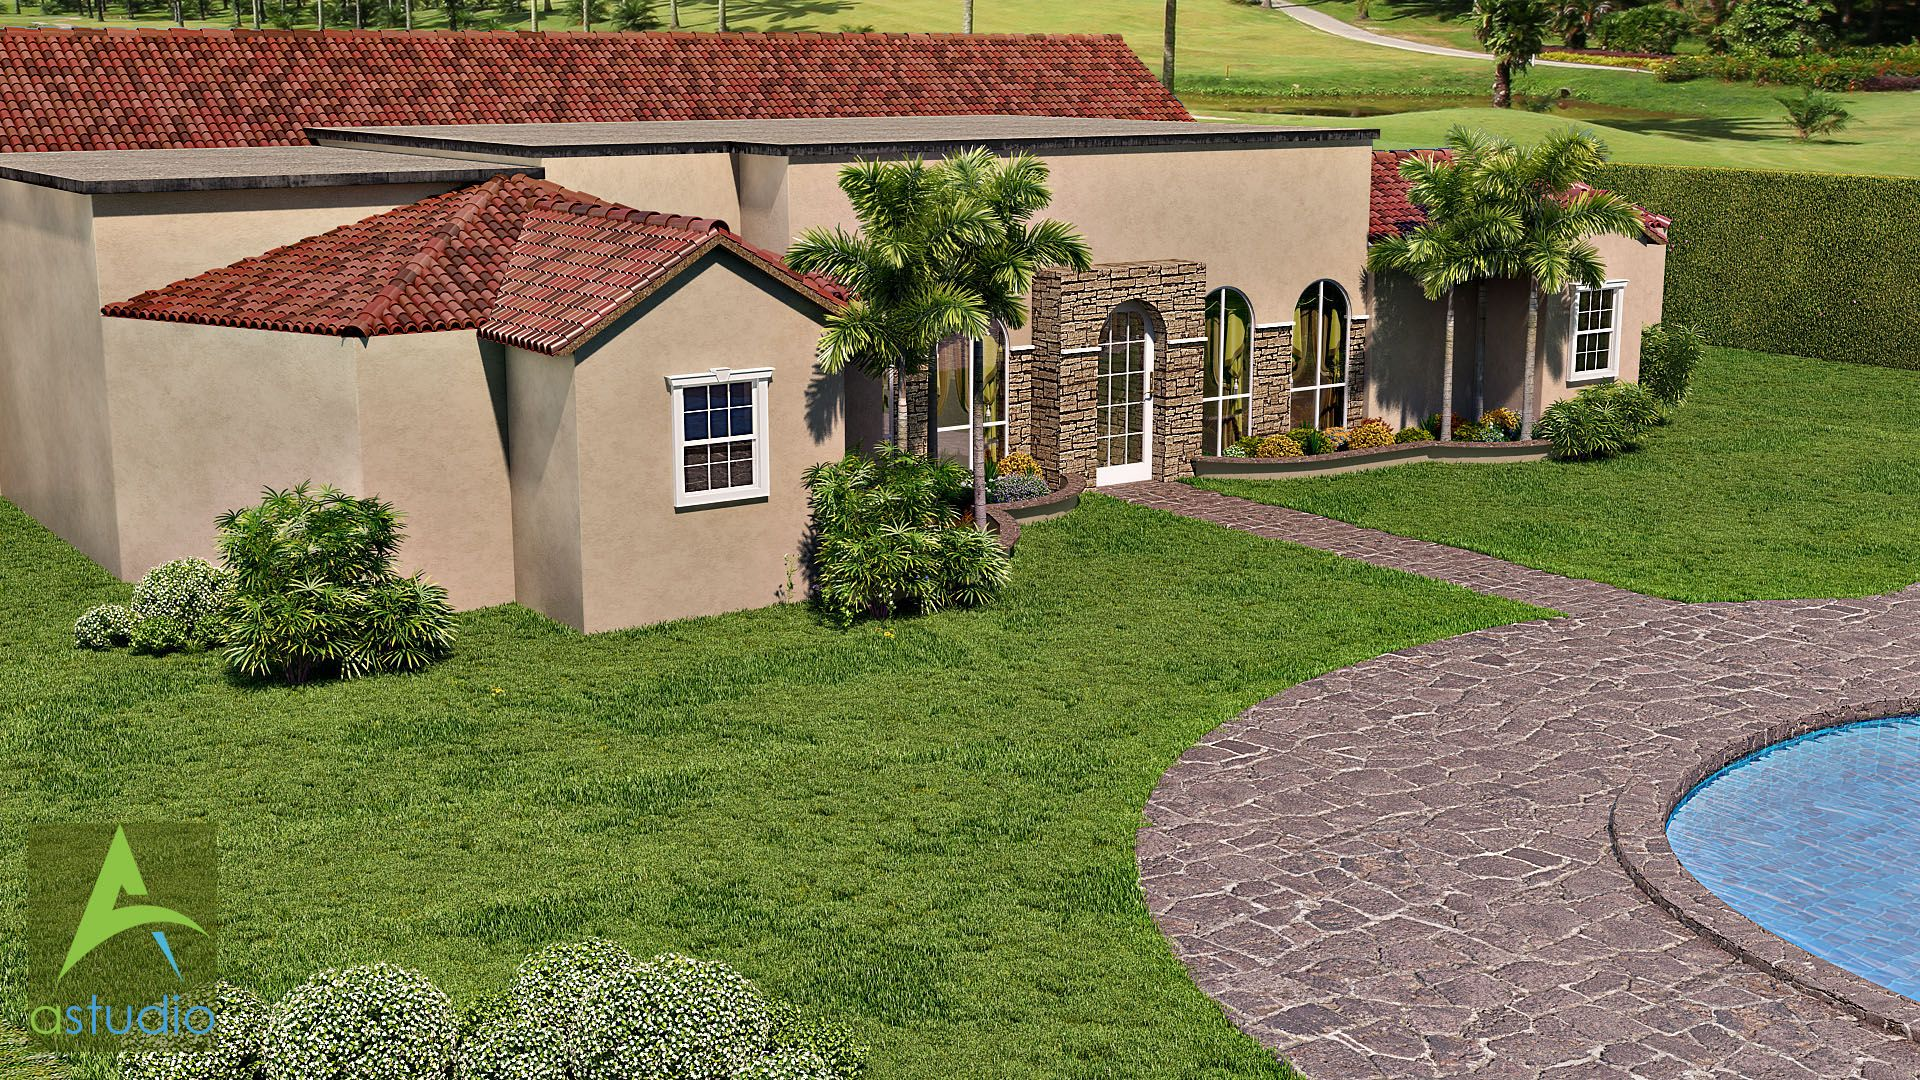 Mediterranean Residential house  Different View